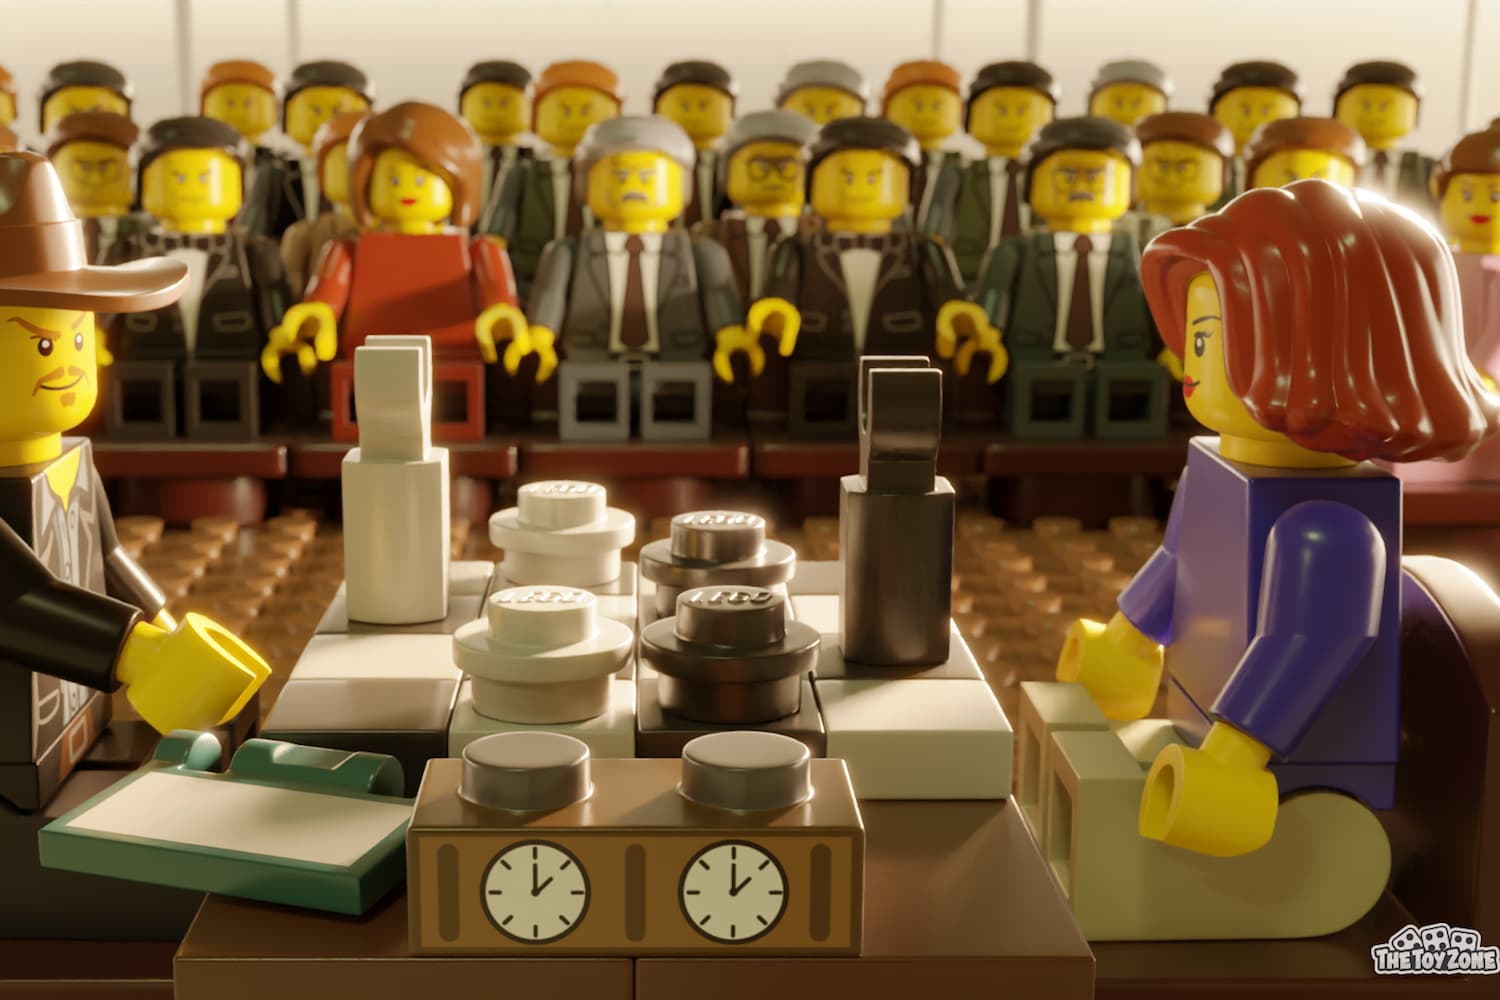 """5 Scenes From Netflix Shows Recreated As LEGOs, From """"The Queen's Gambit"""" to """"Bridgerton"""""""